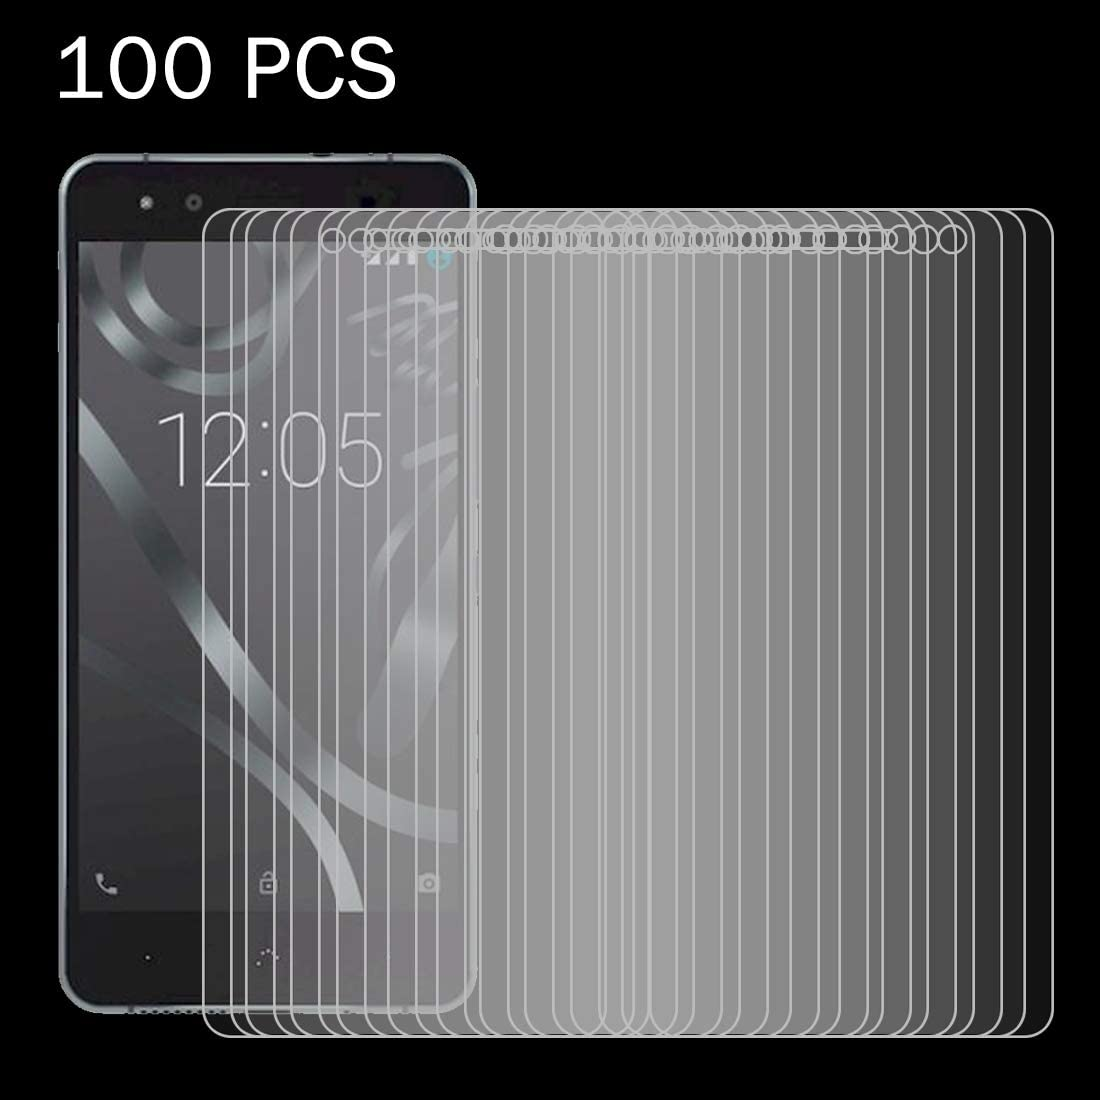 Wangl Mobile Phone Tempered Glass Film 100 PCS for BQ Aquaris X5 Plus 0.26mm 9H Surface Hardness 2.5D Explosion-Proof Tempered Glass Screen Film Tempered Glass Film